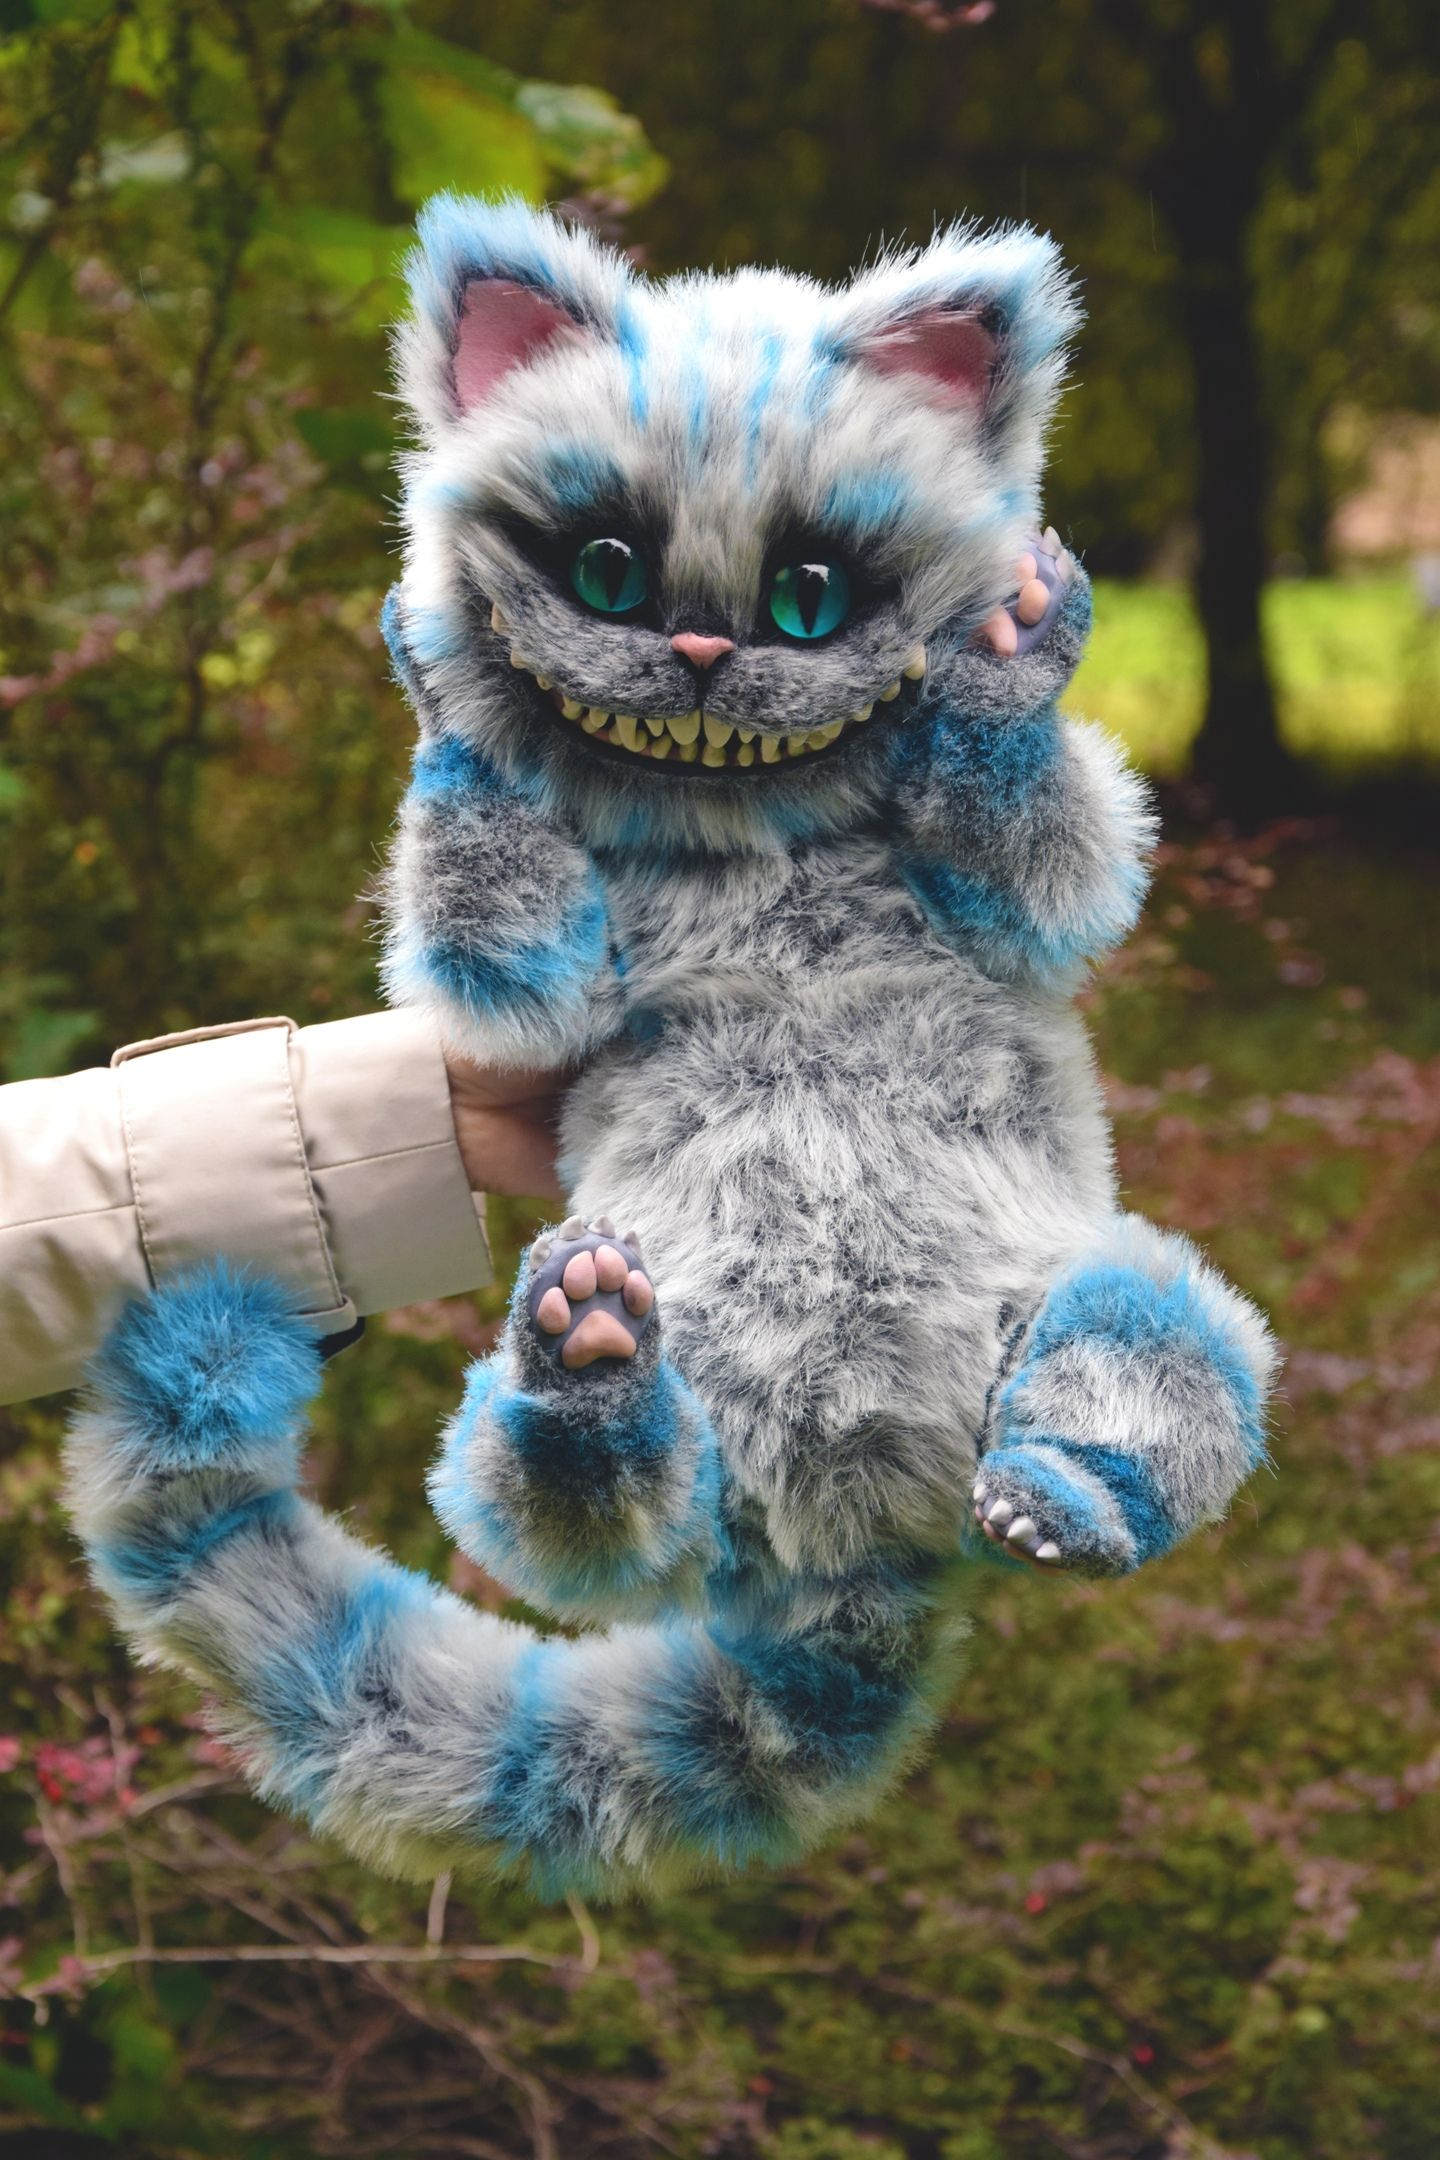 Cheshire Cat, Whimsical Animals & Fantasy creatures from faux fur and polymer clay, Mystical Posable Animals toys for collectibles and decor